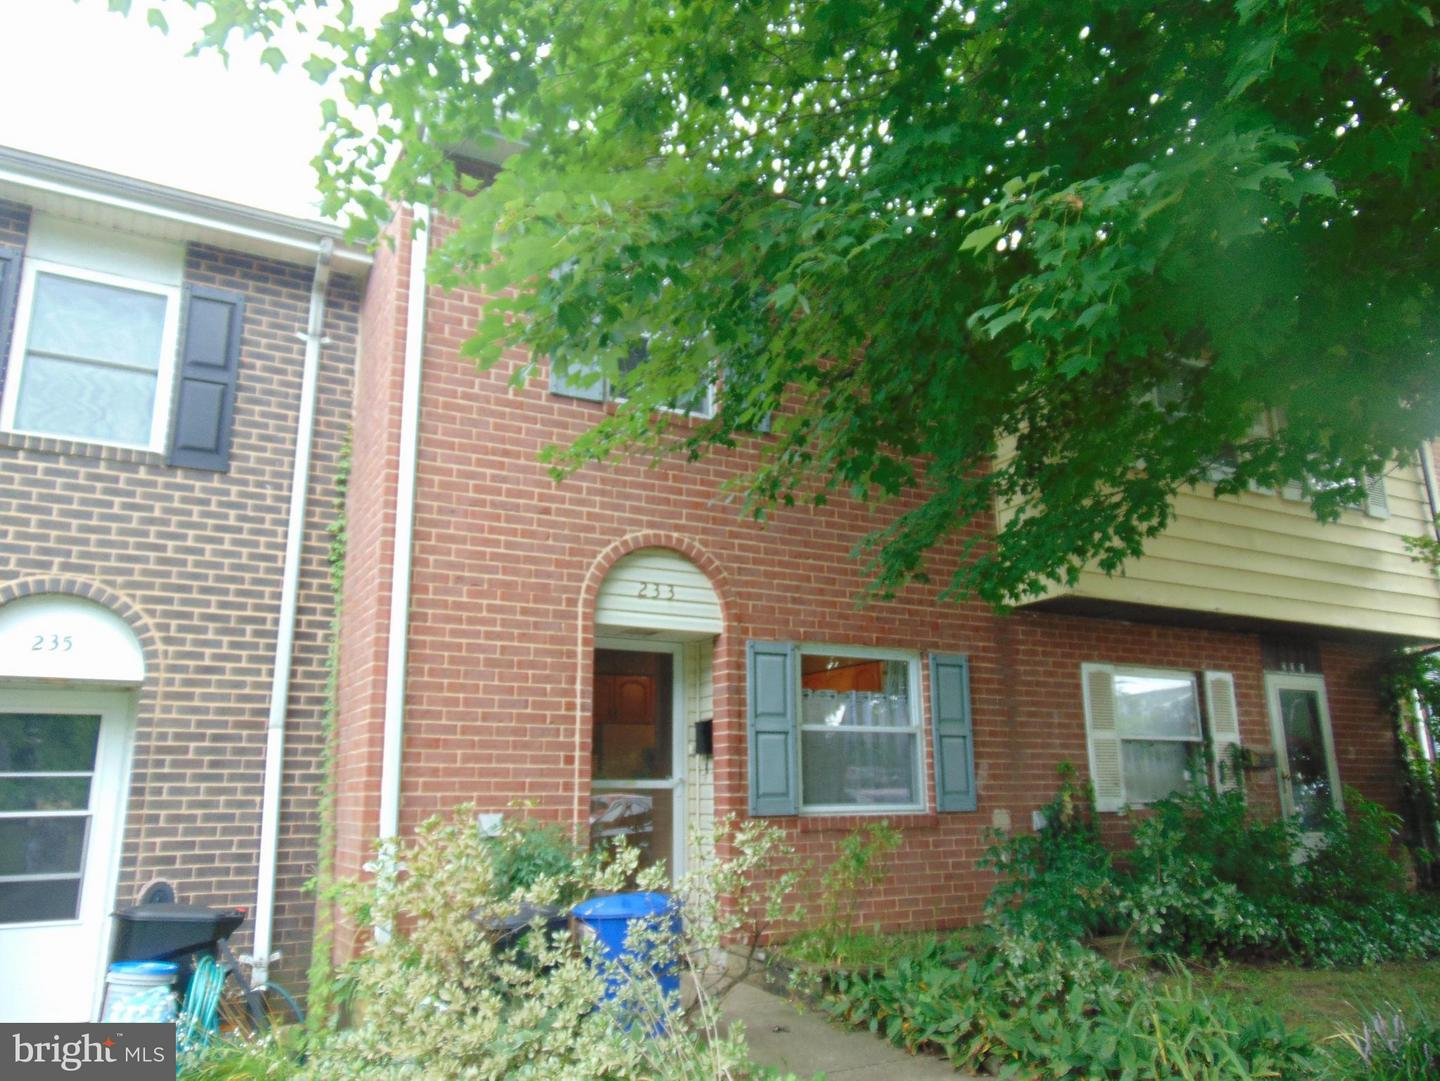 Other Residential for Rent at 233 Foster Knoll Dr Joppa, Maryland 21085 United States